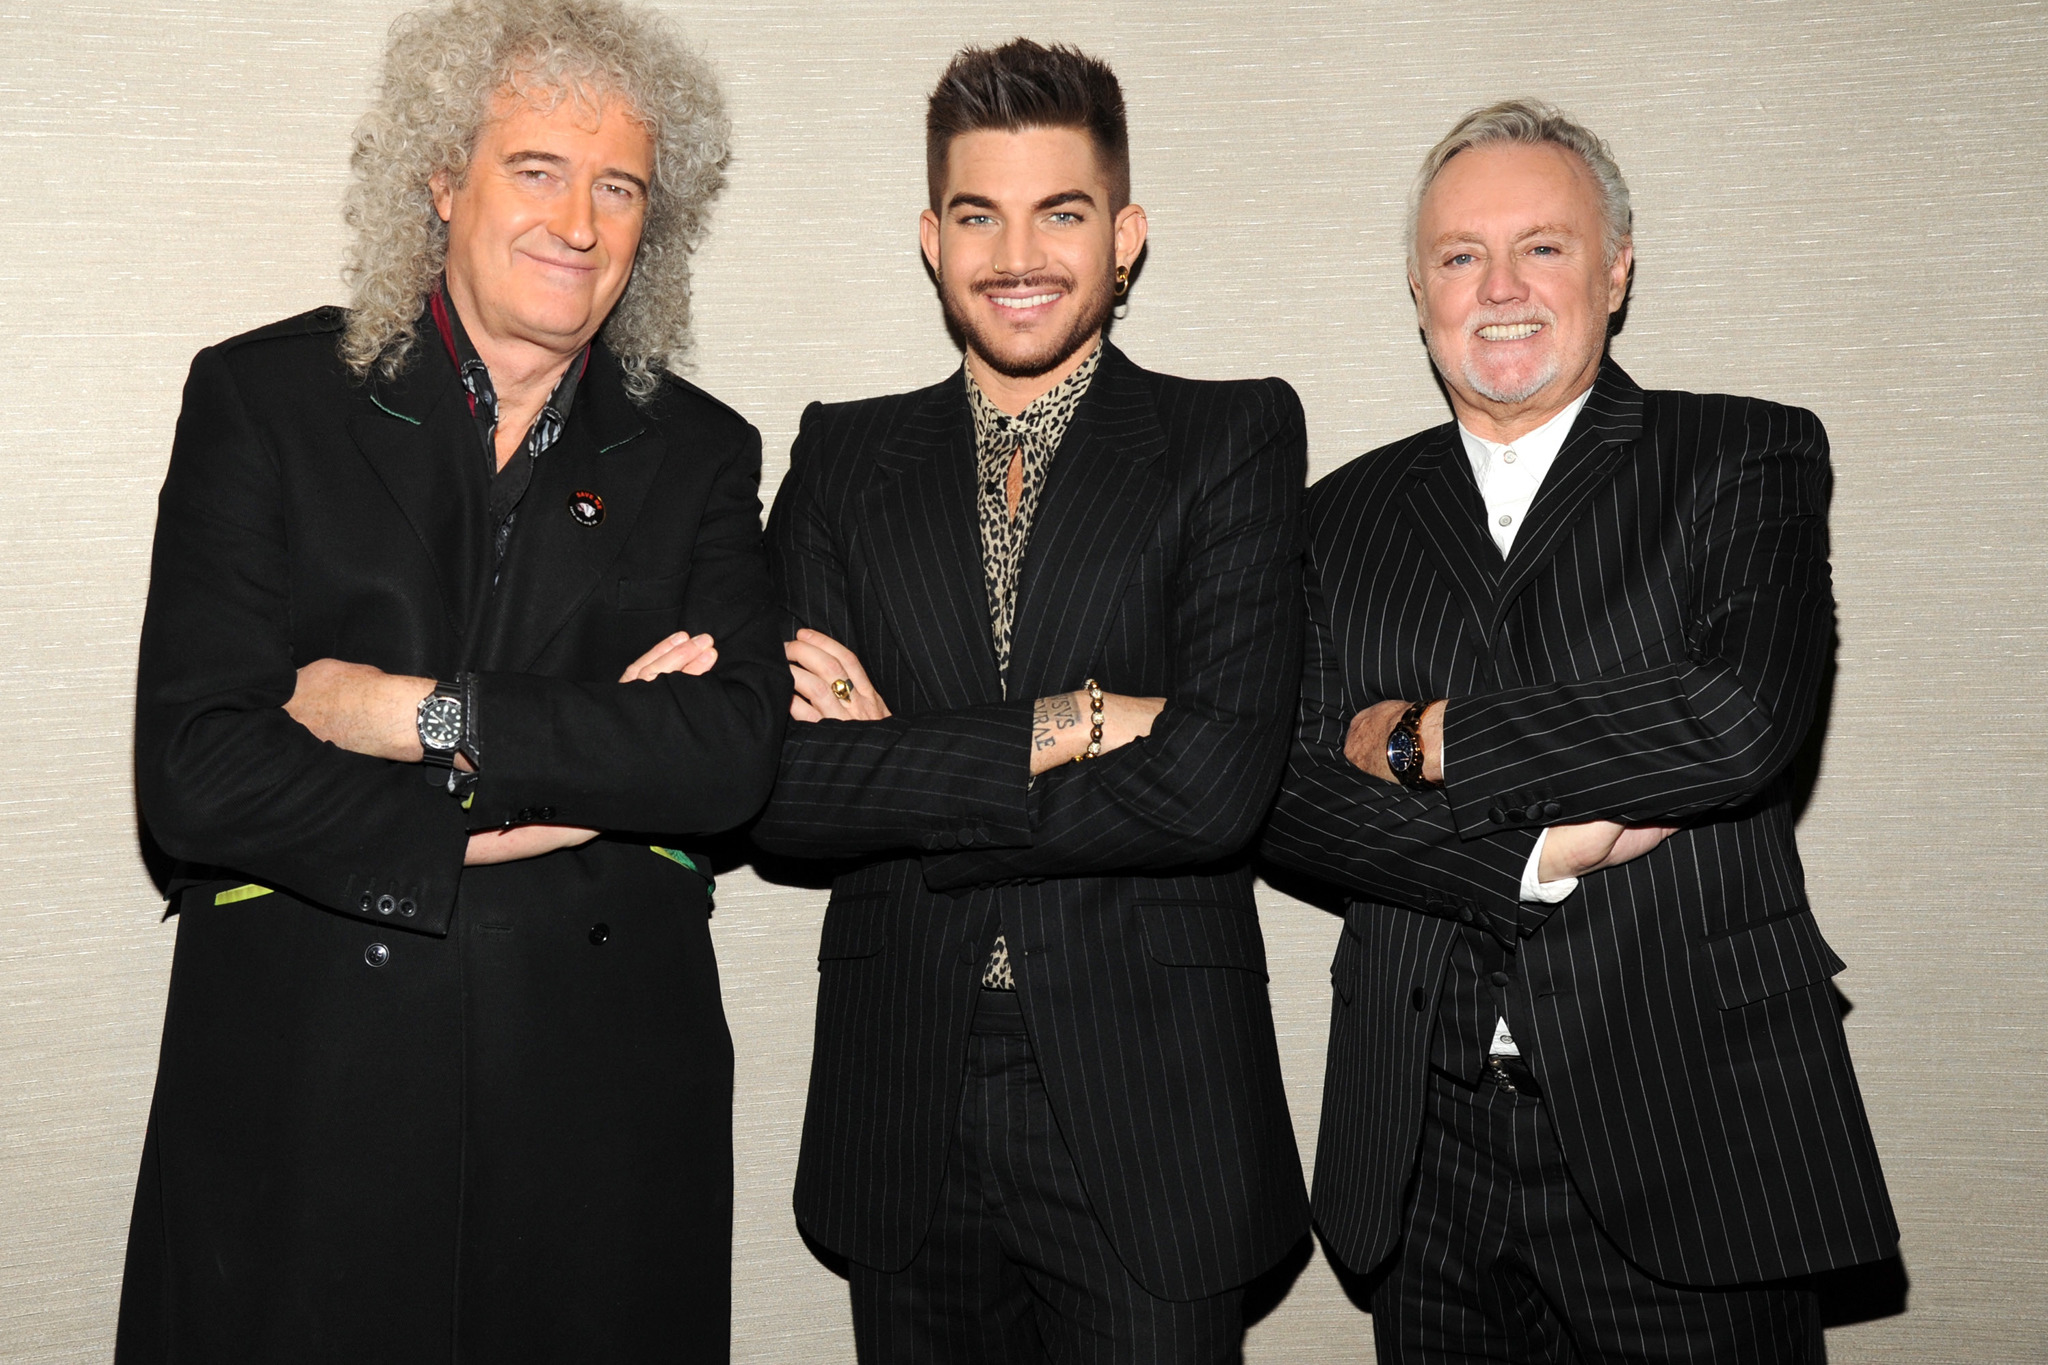 Queen plus Adam Lambert